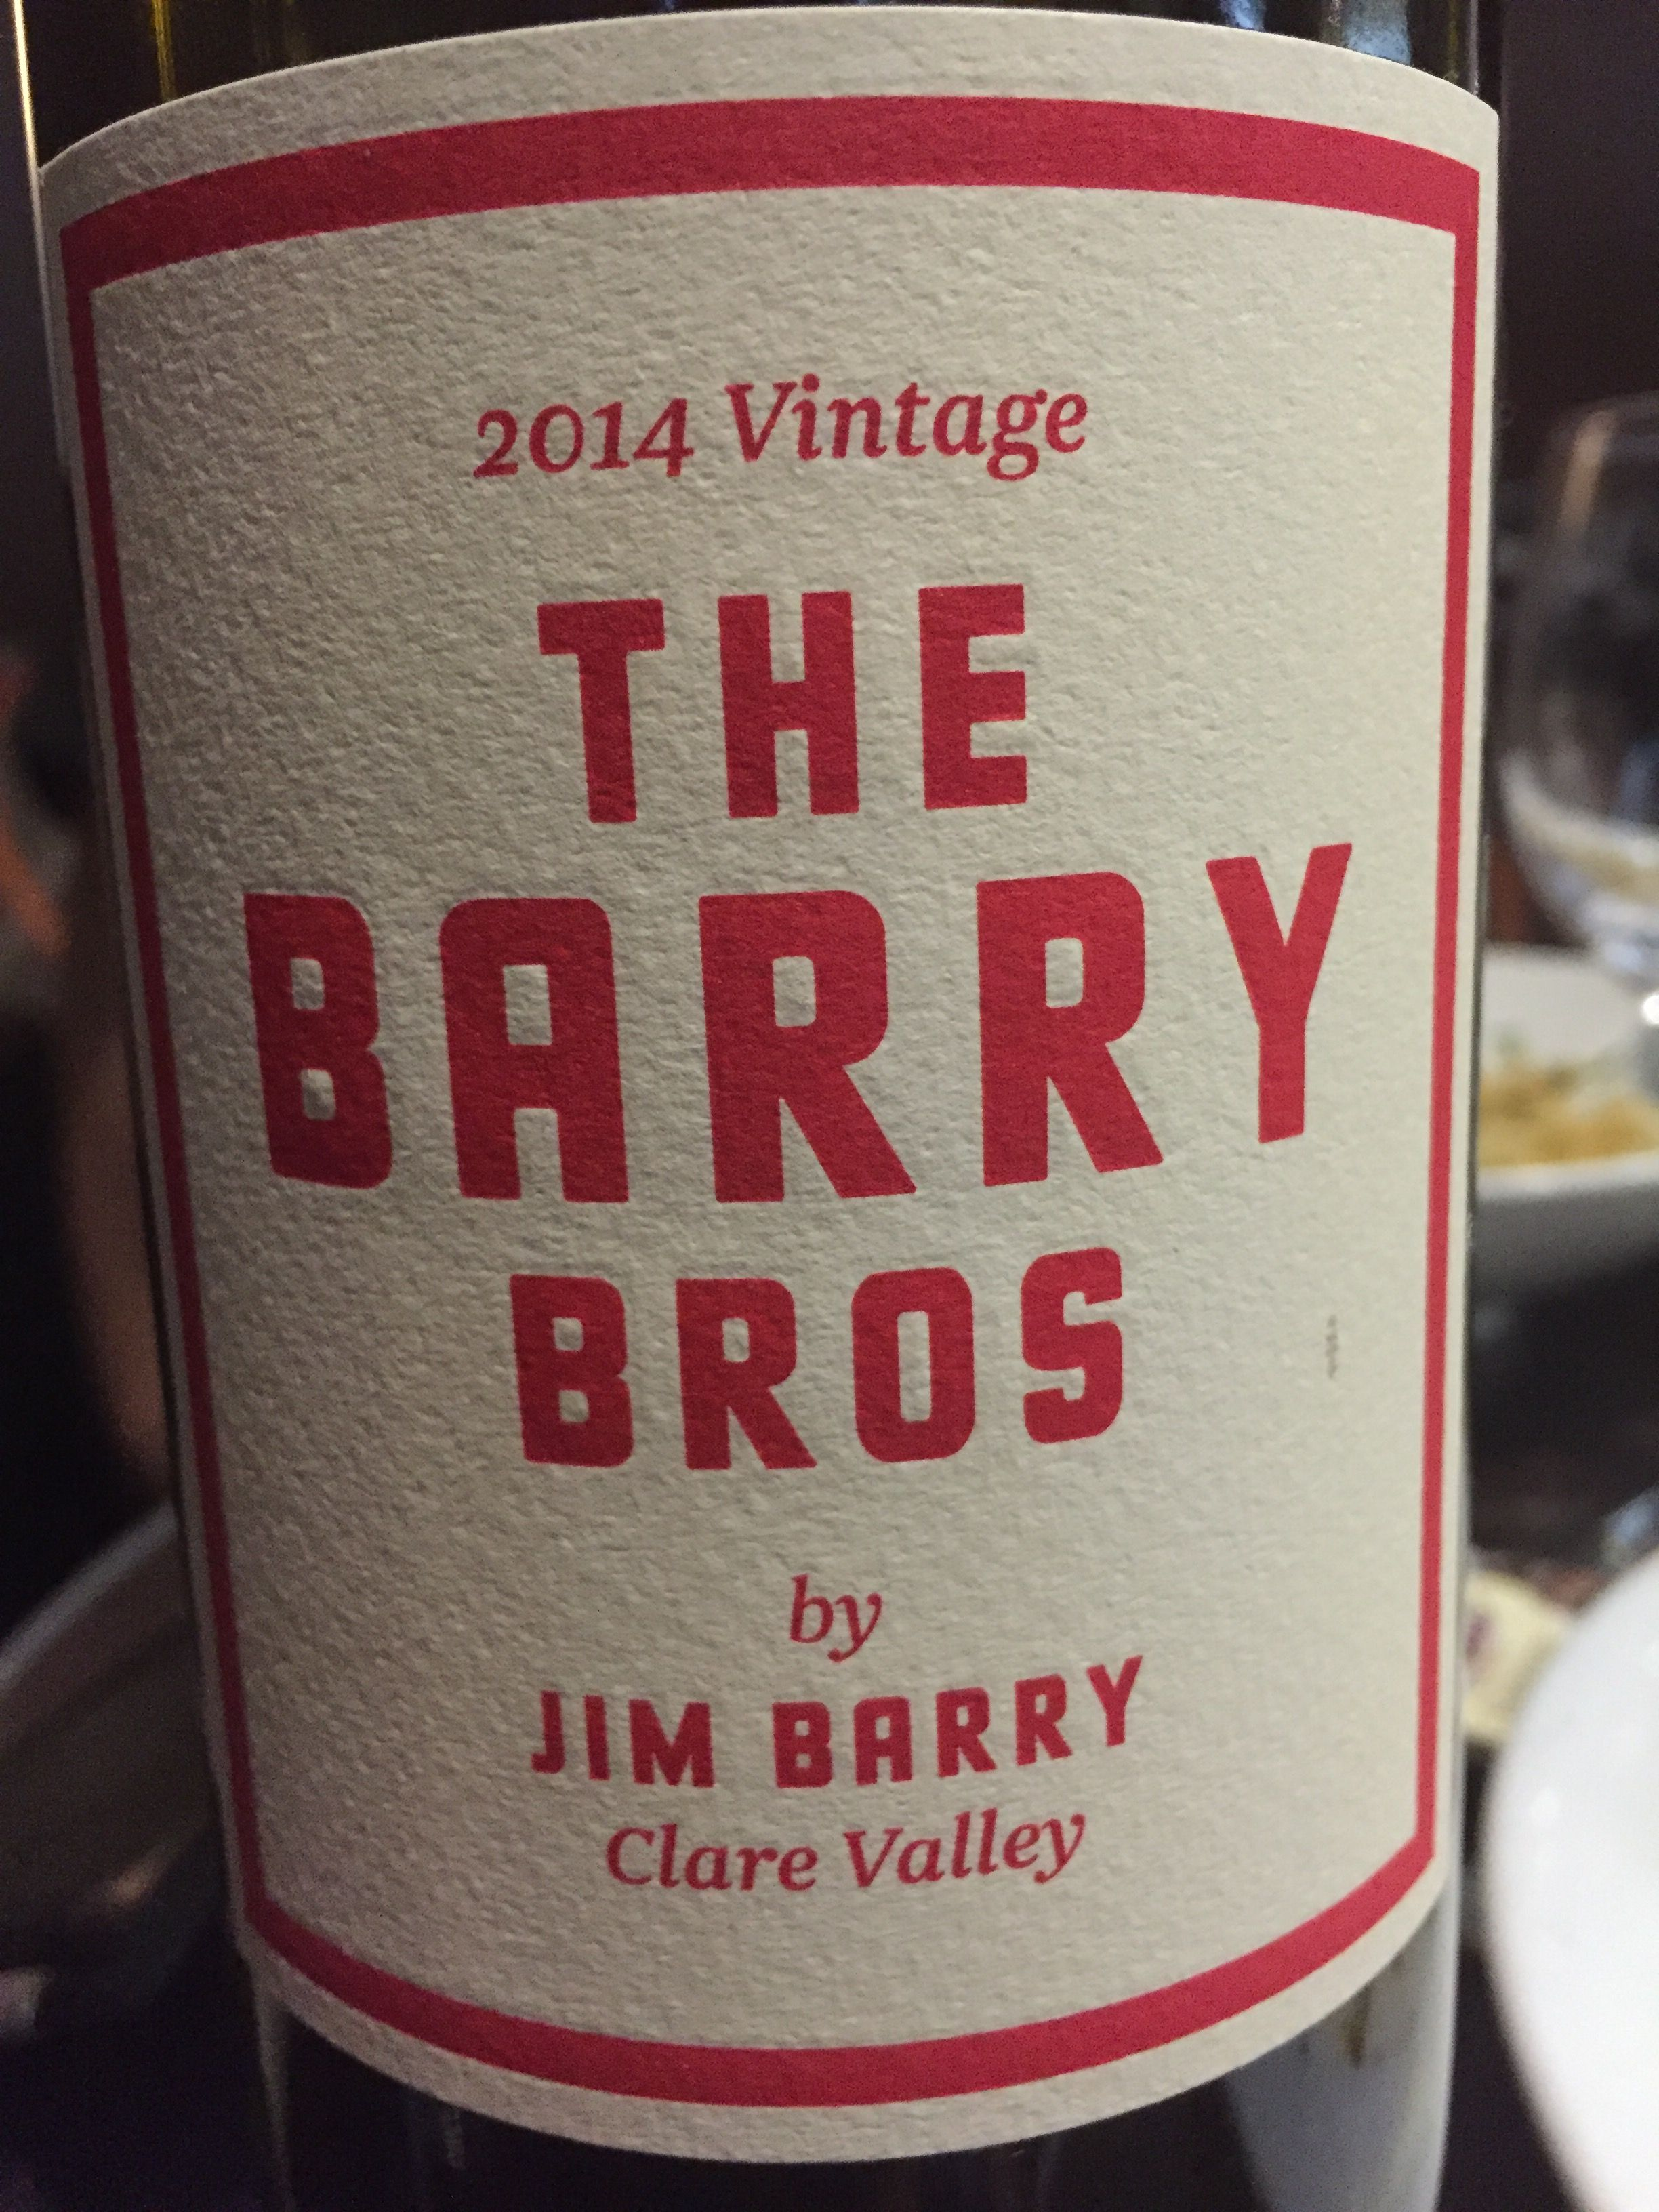 2014 Vintage The Barry Bros By Jim Barry Clare Valley Very Nice Shiraz Cabernet Sauvignon A Very Pl Clare Valley Dunkin Donuts Coffee Cup Cabernet Sauvignon